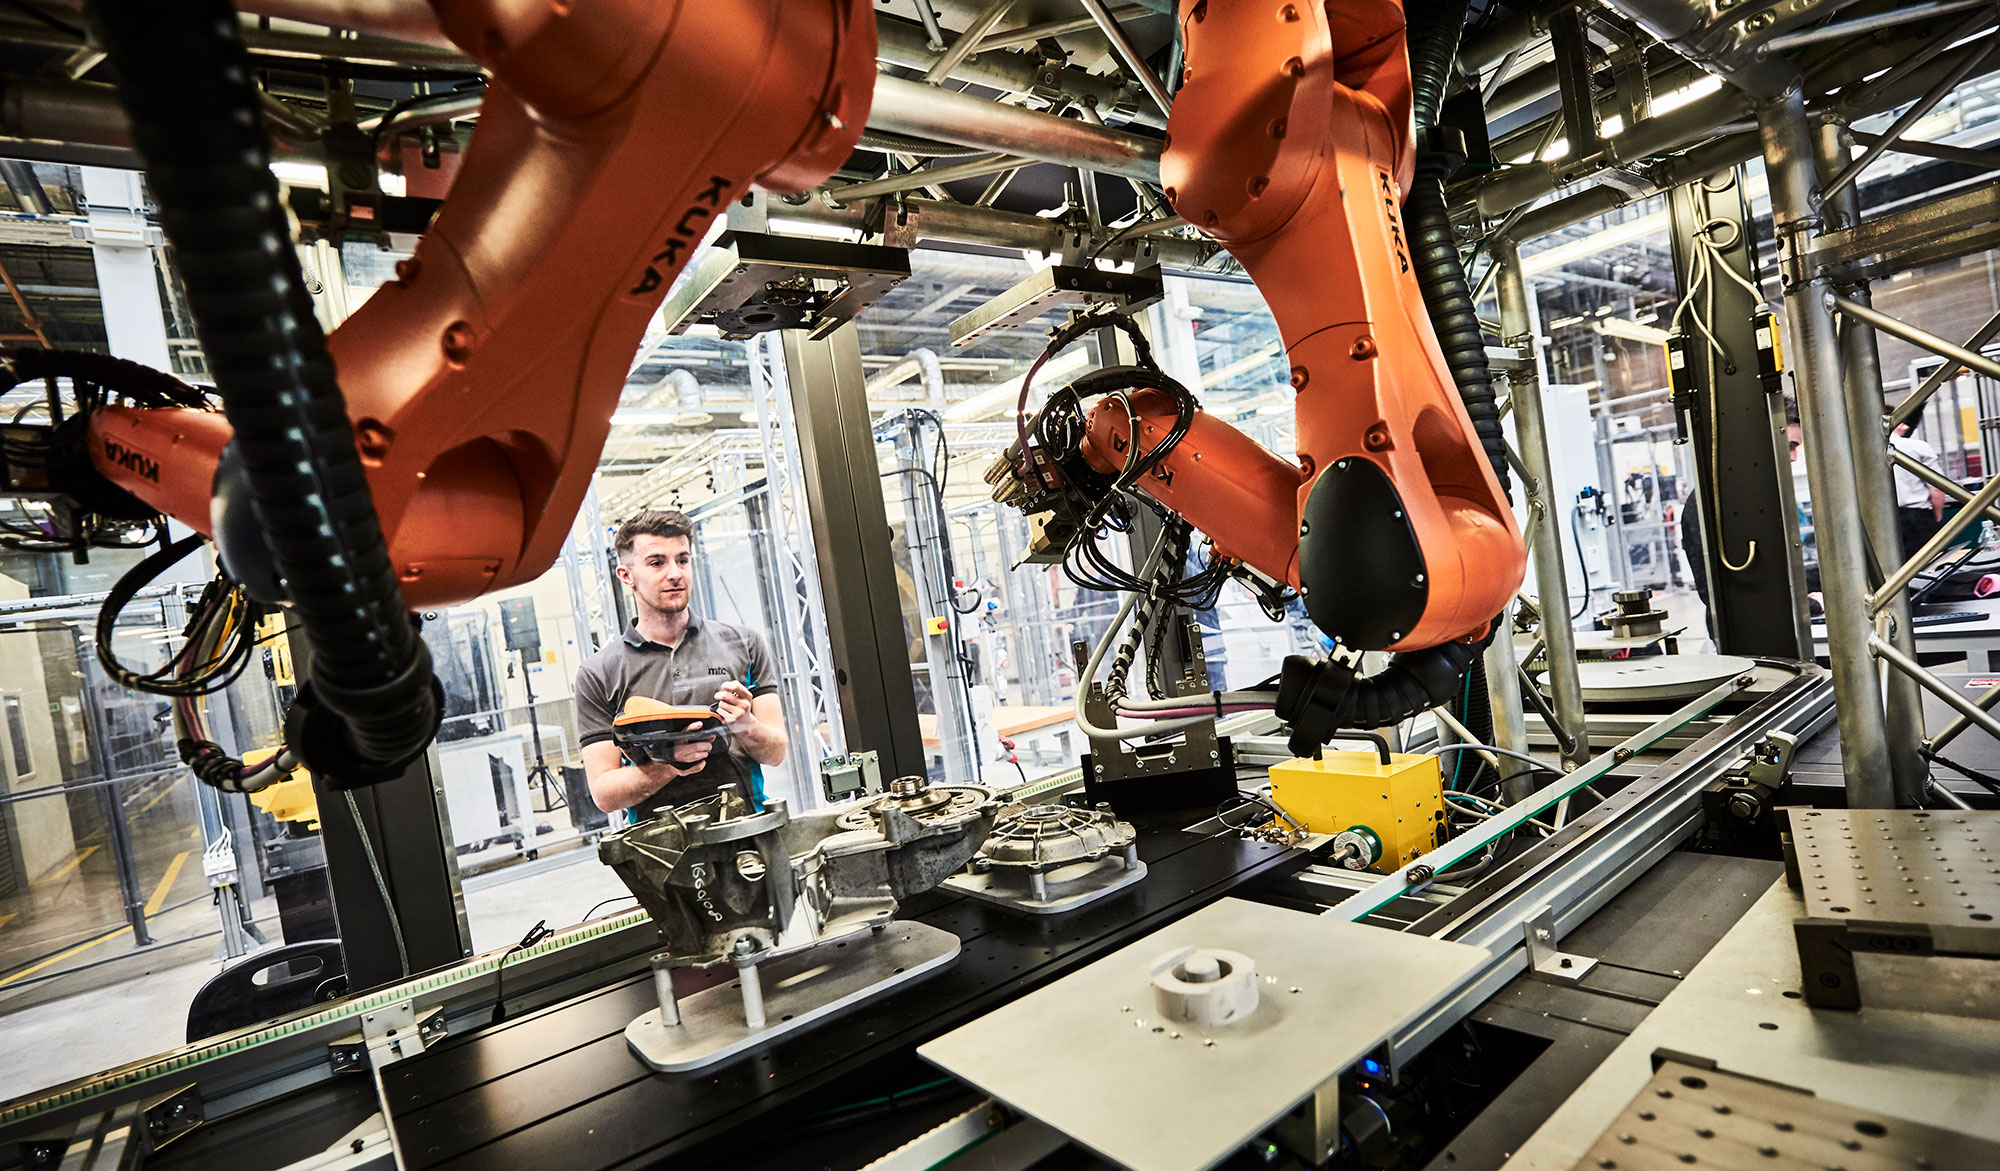 Mtc Appointed Lead Auditor For Uk Robotics High Value